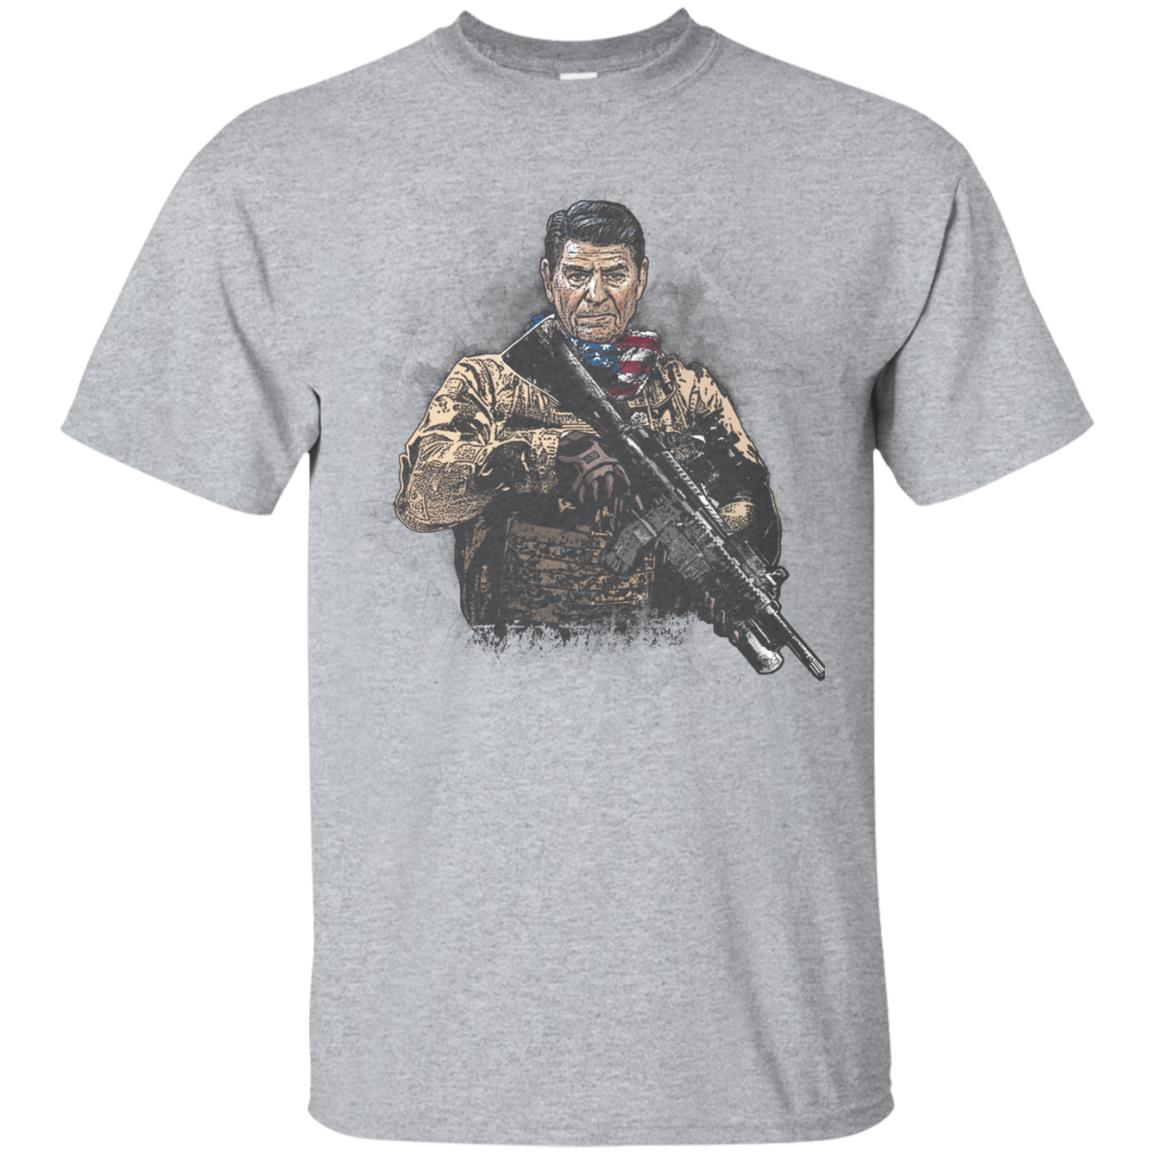 Presidential Soldiers Ronald Reagan T-Shirt 99promocode